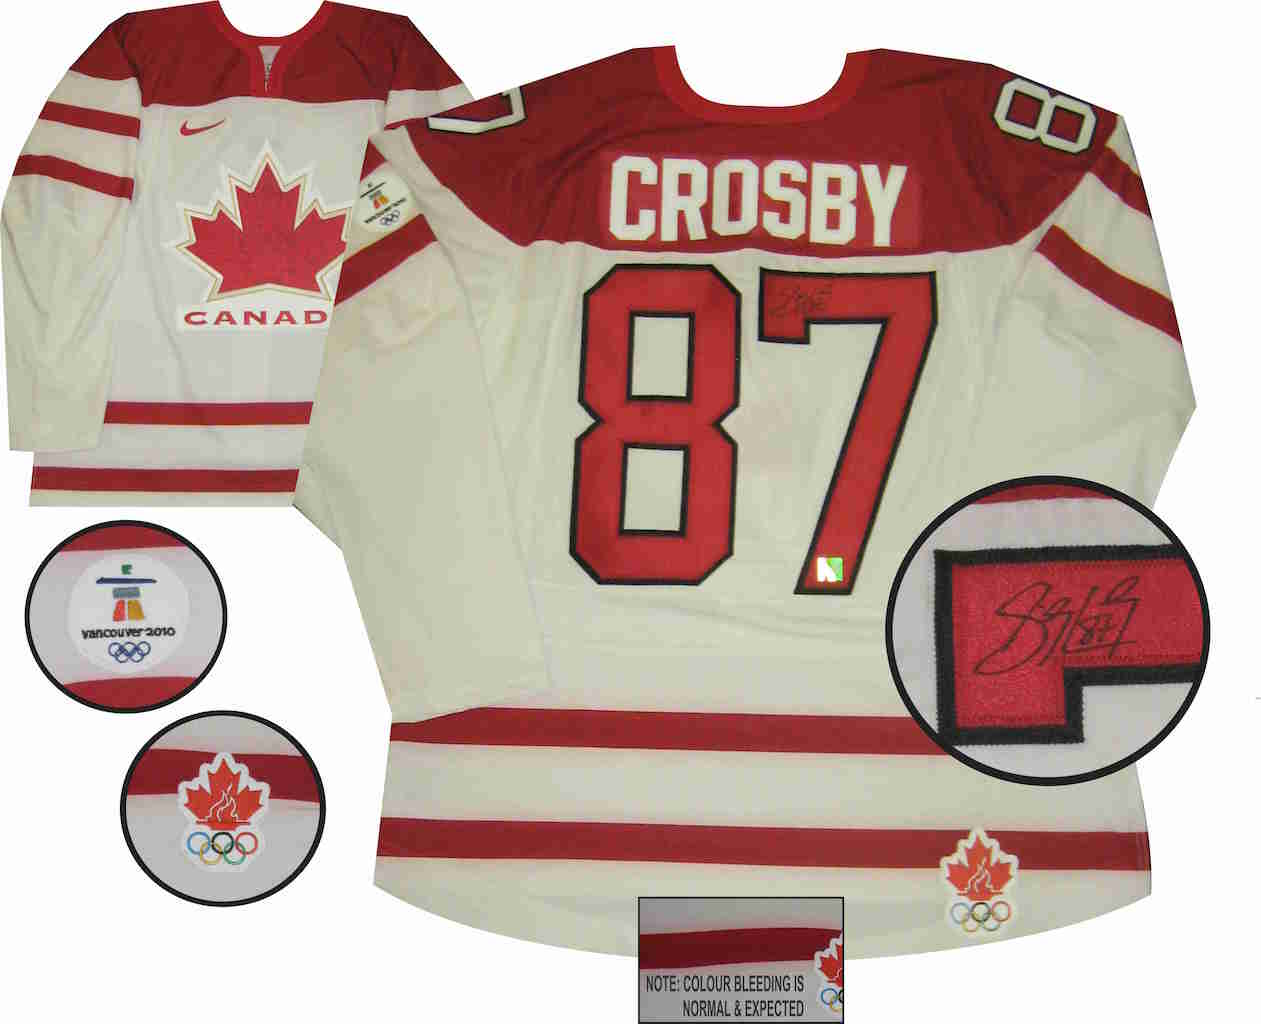 official photos dafef ea26d Crosby Sidney 2014 Canada Team Jersey takeout.kitapulsa.com